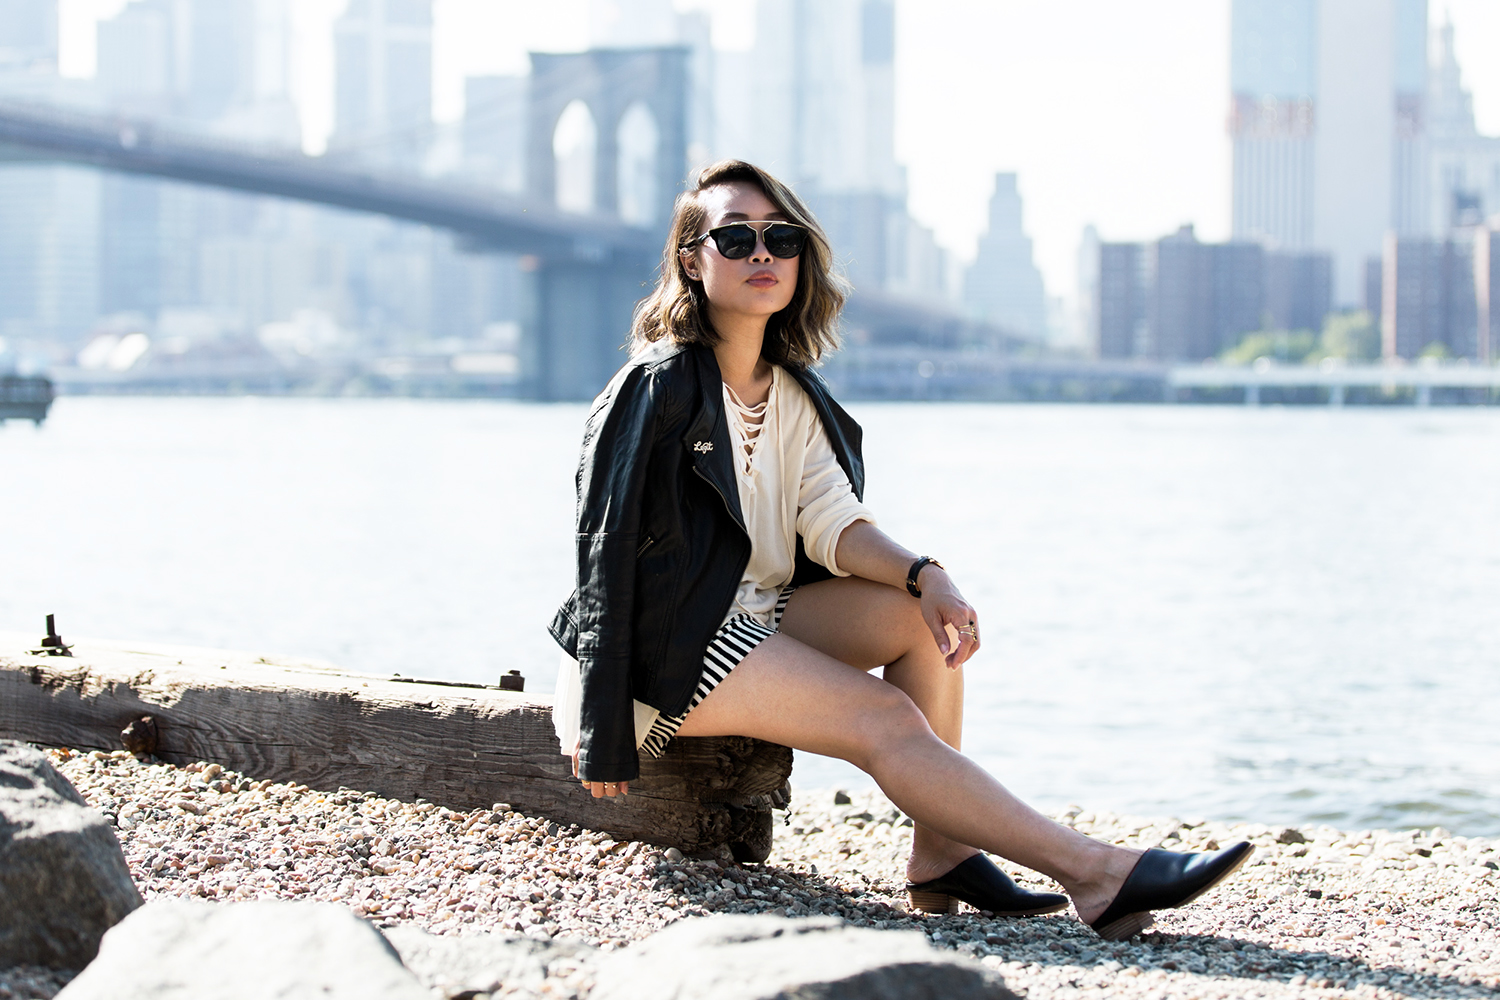 02brooklyn-nyc-newyork-travel-fashion-style